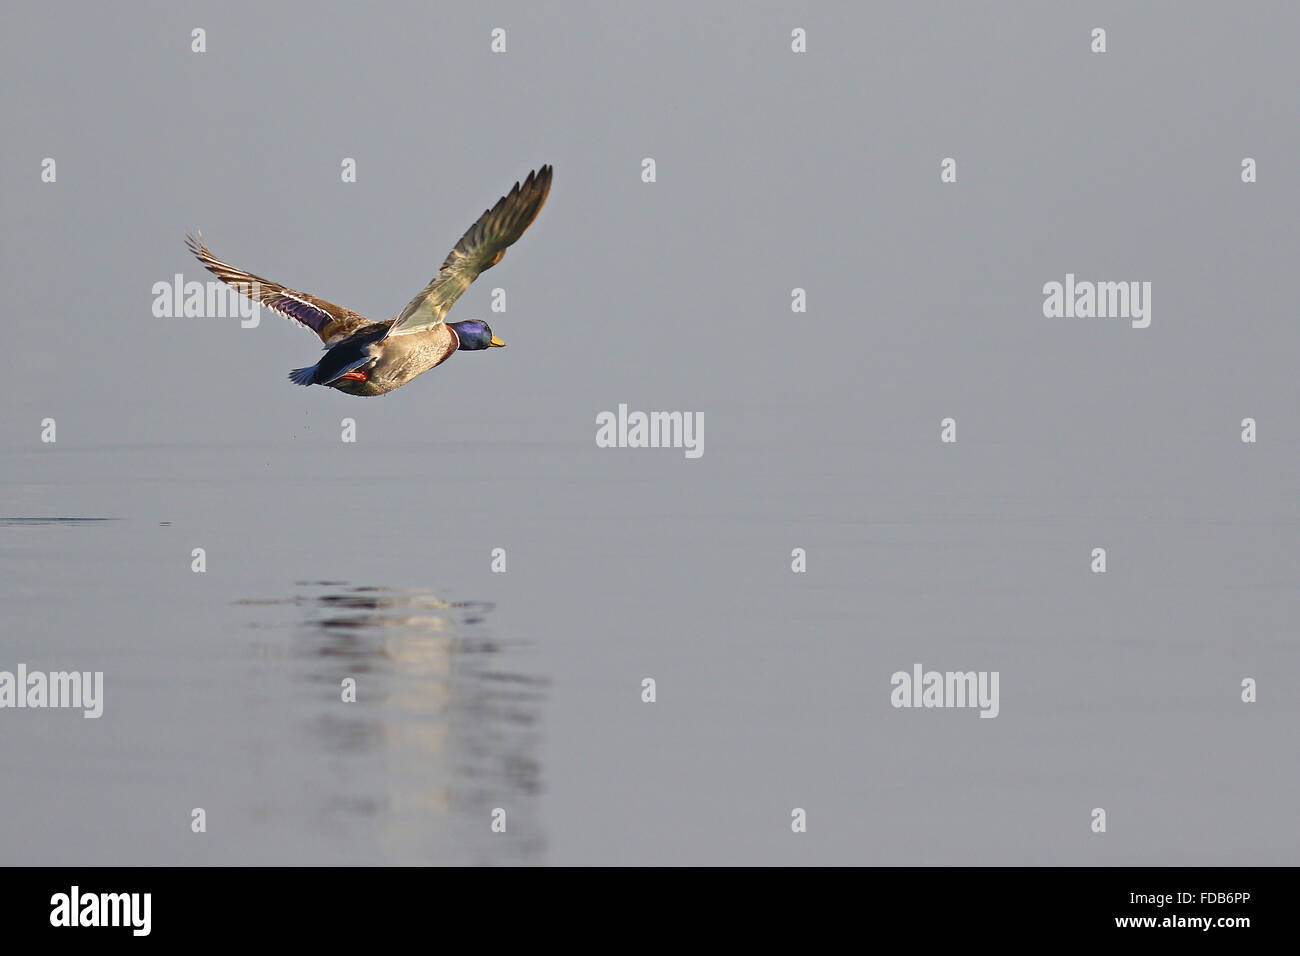 Low flying mallard duck over a smooth lake with reflections in the water - Stock Image